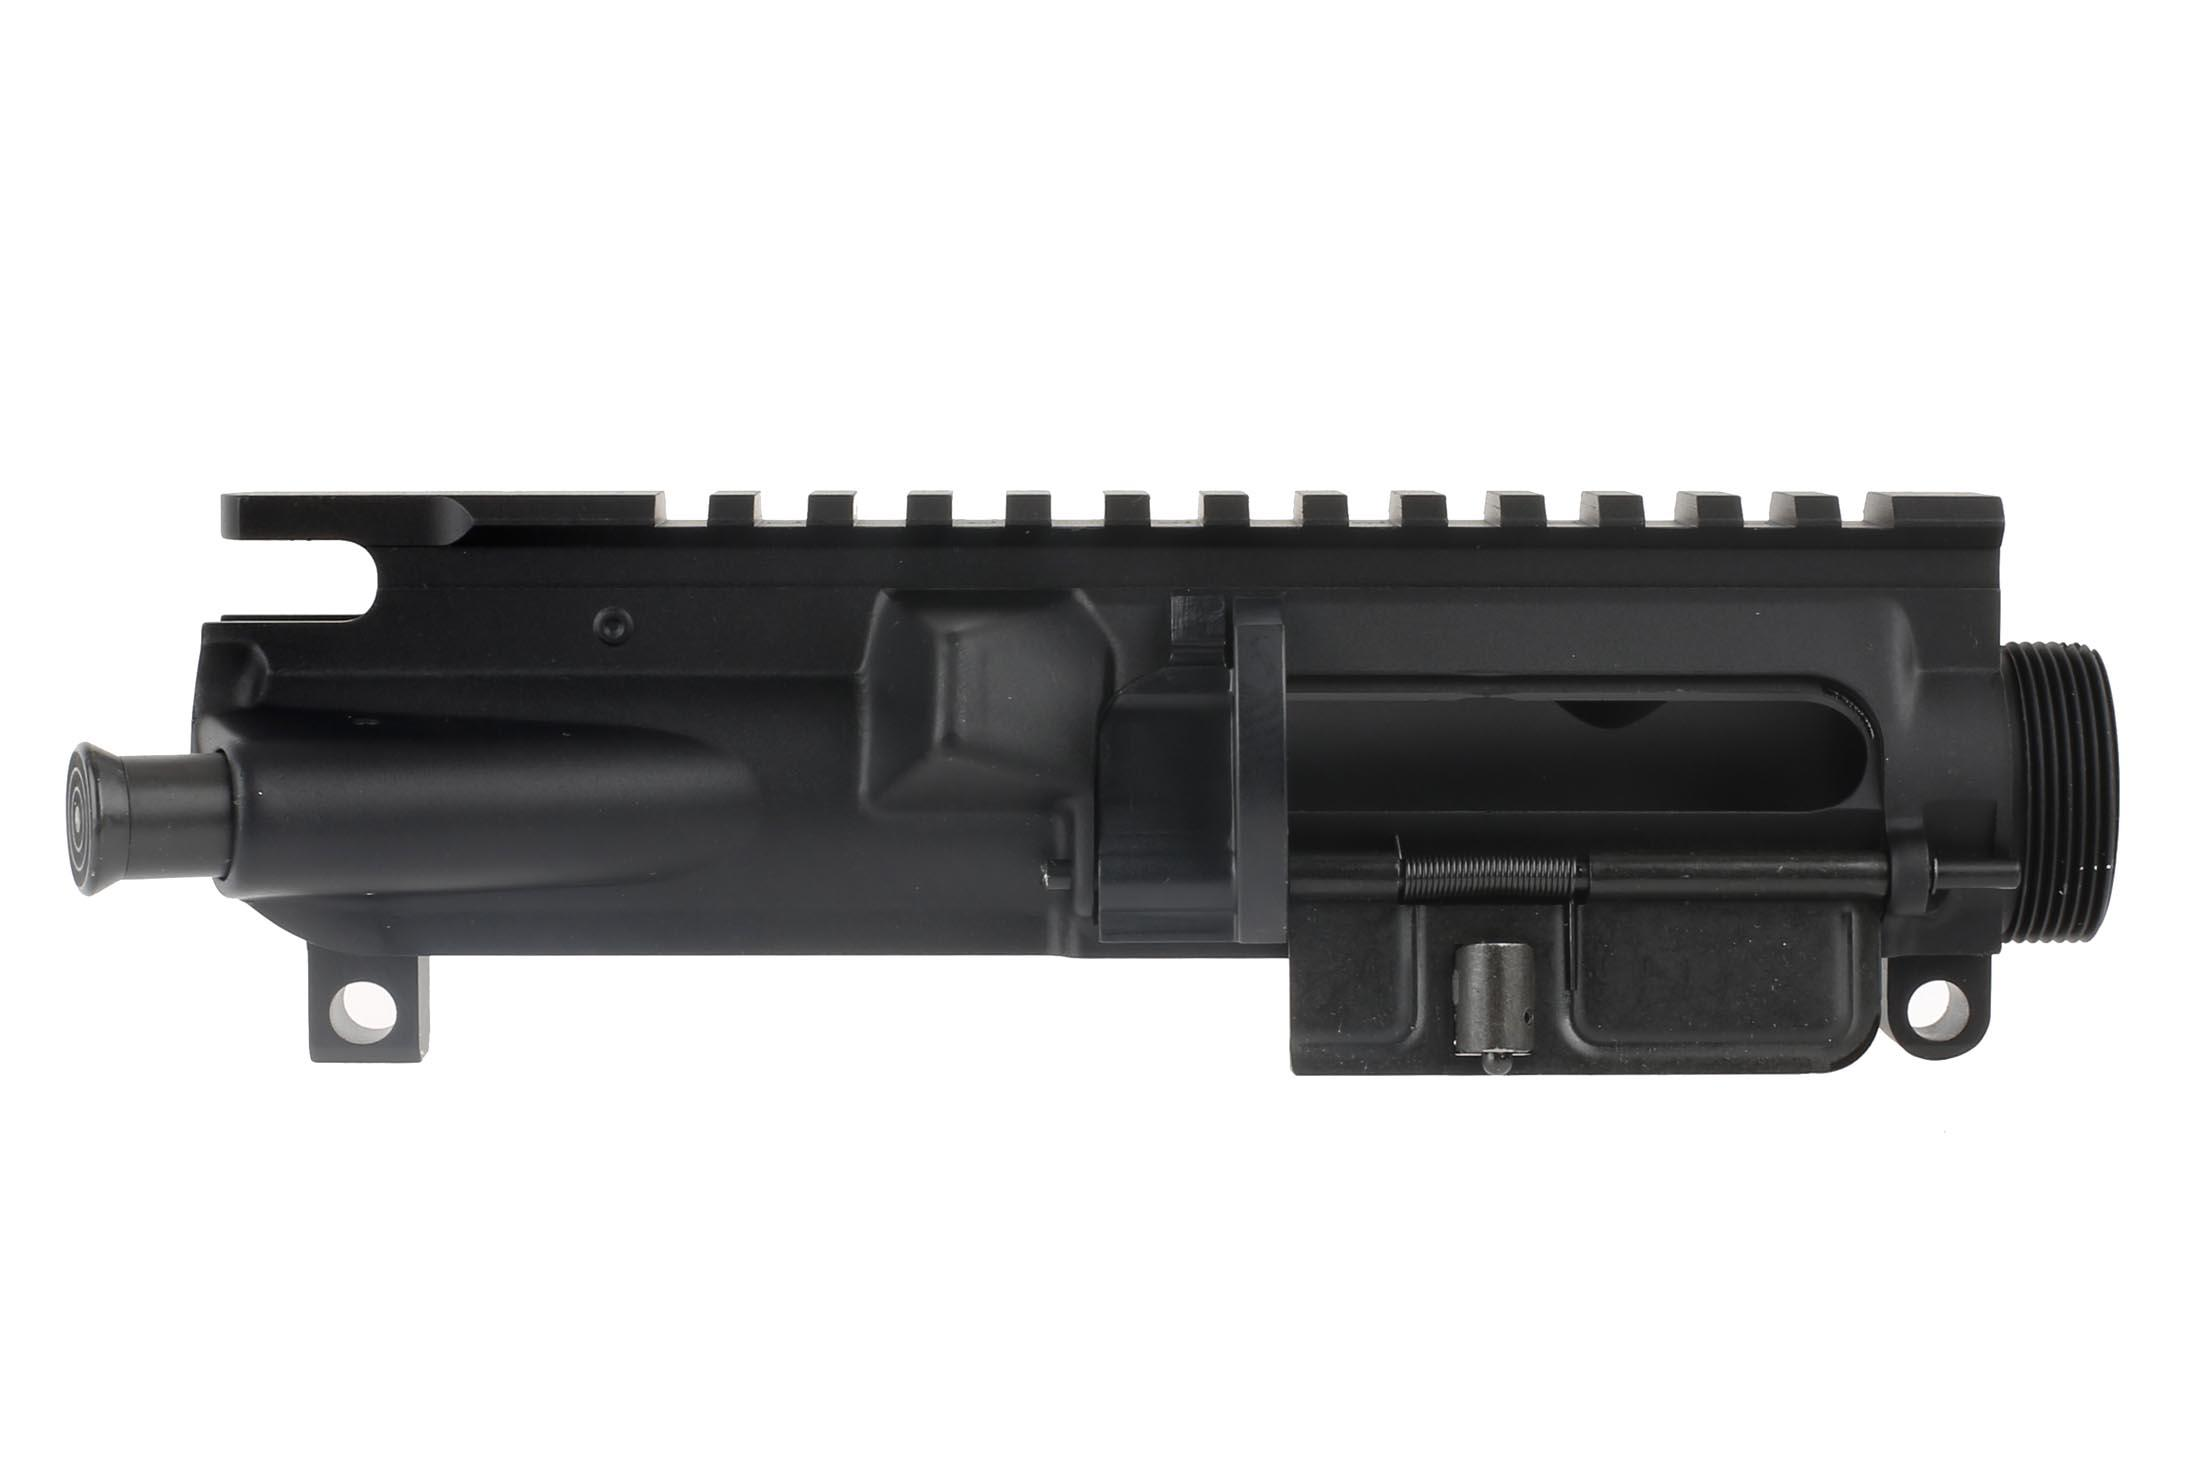 CMMG AR-9 Upper Receiver For 9mm